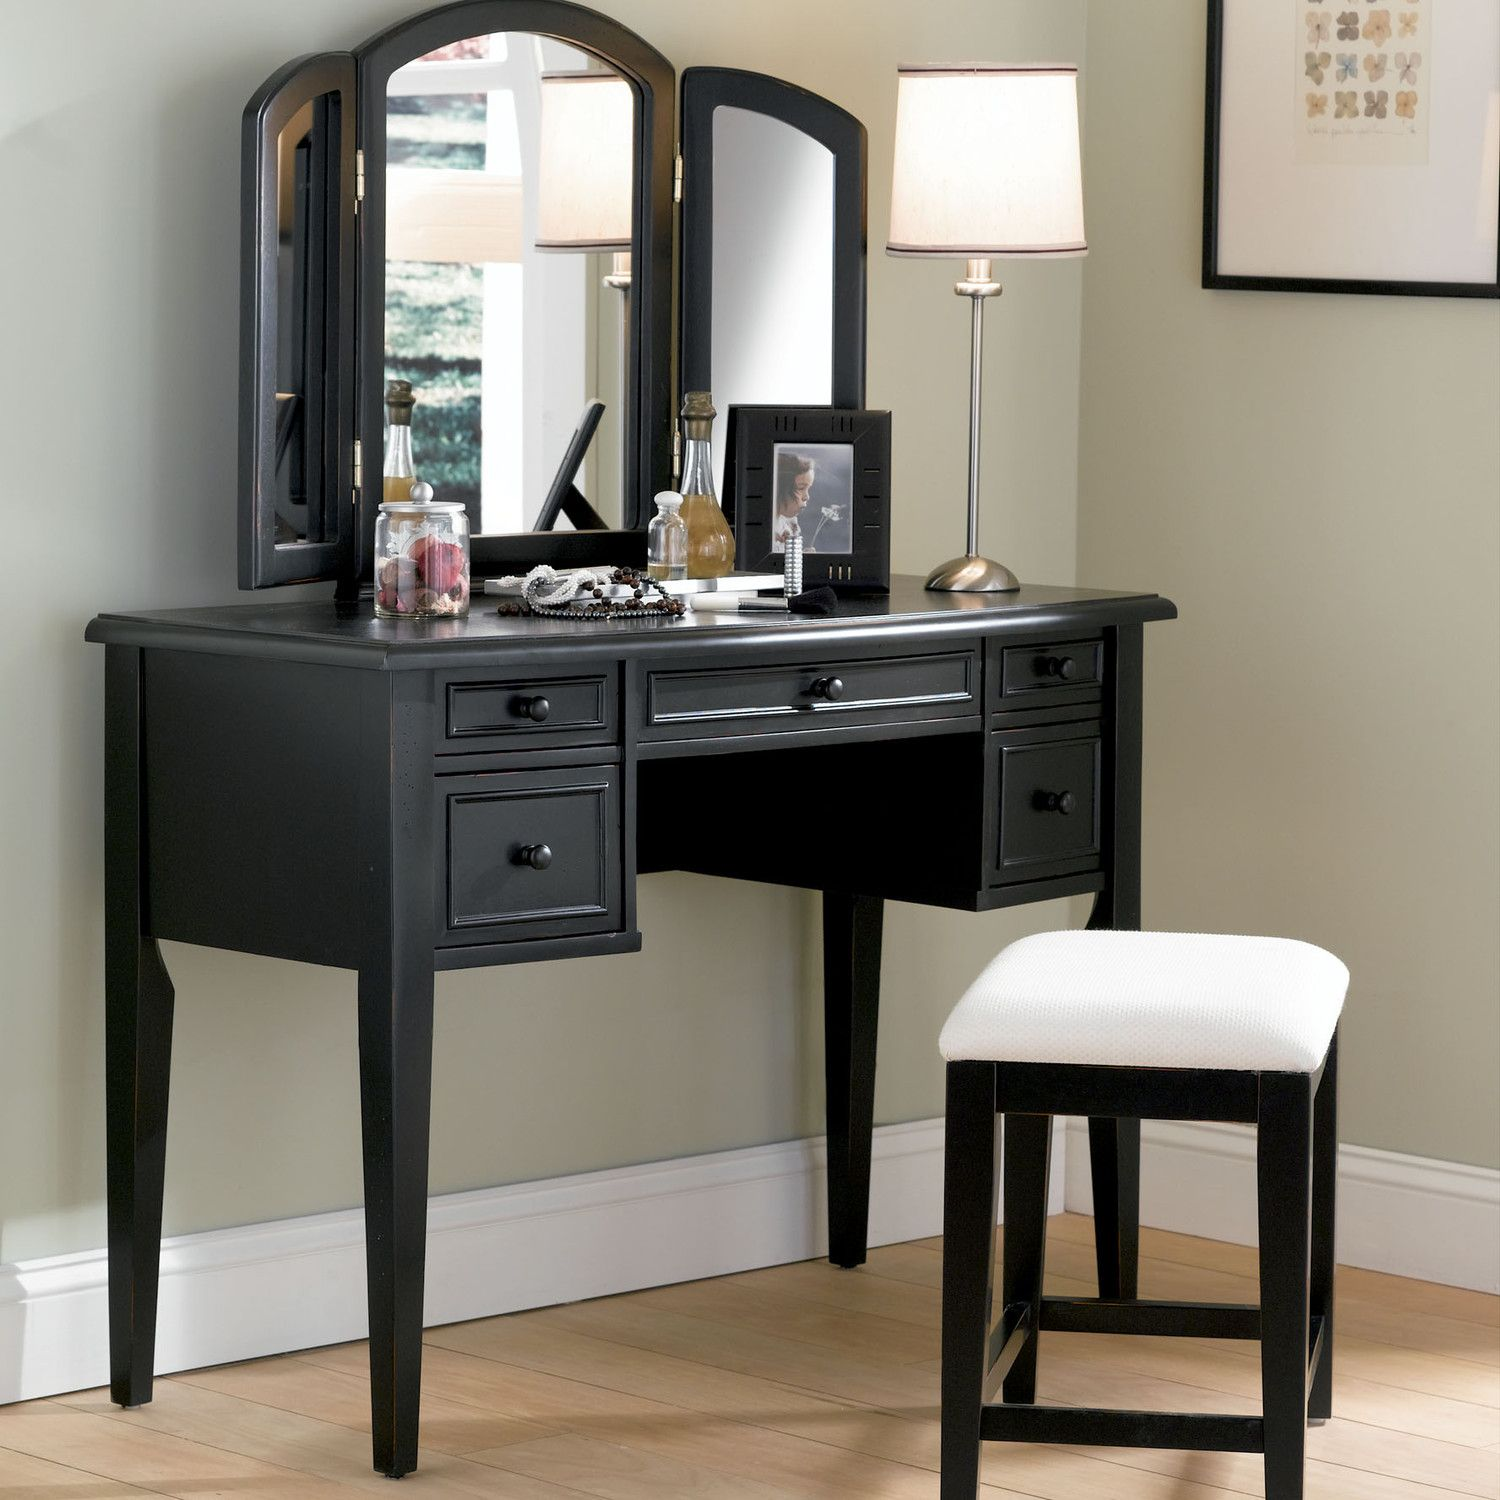 black vanity desk with mirror. Makeup Table And Vanities Powell Furniture Antique Black Vanity Set With Mirror  Bedroom